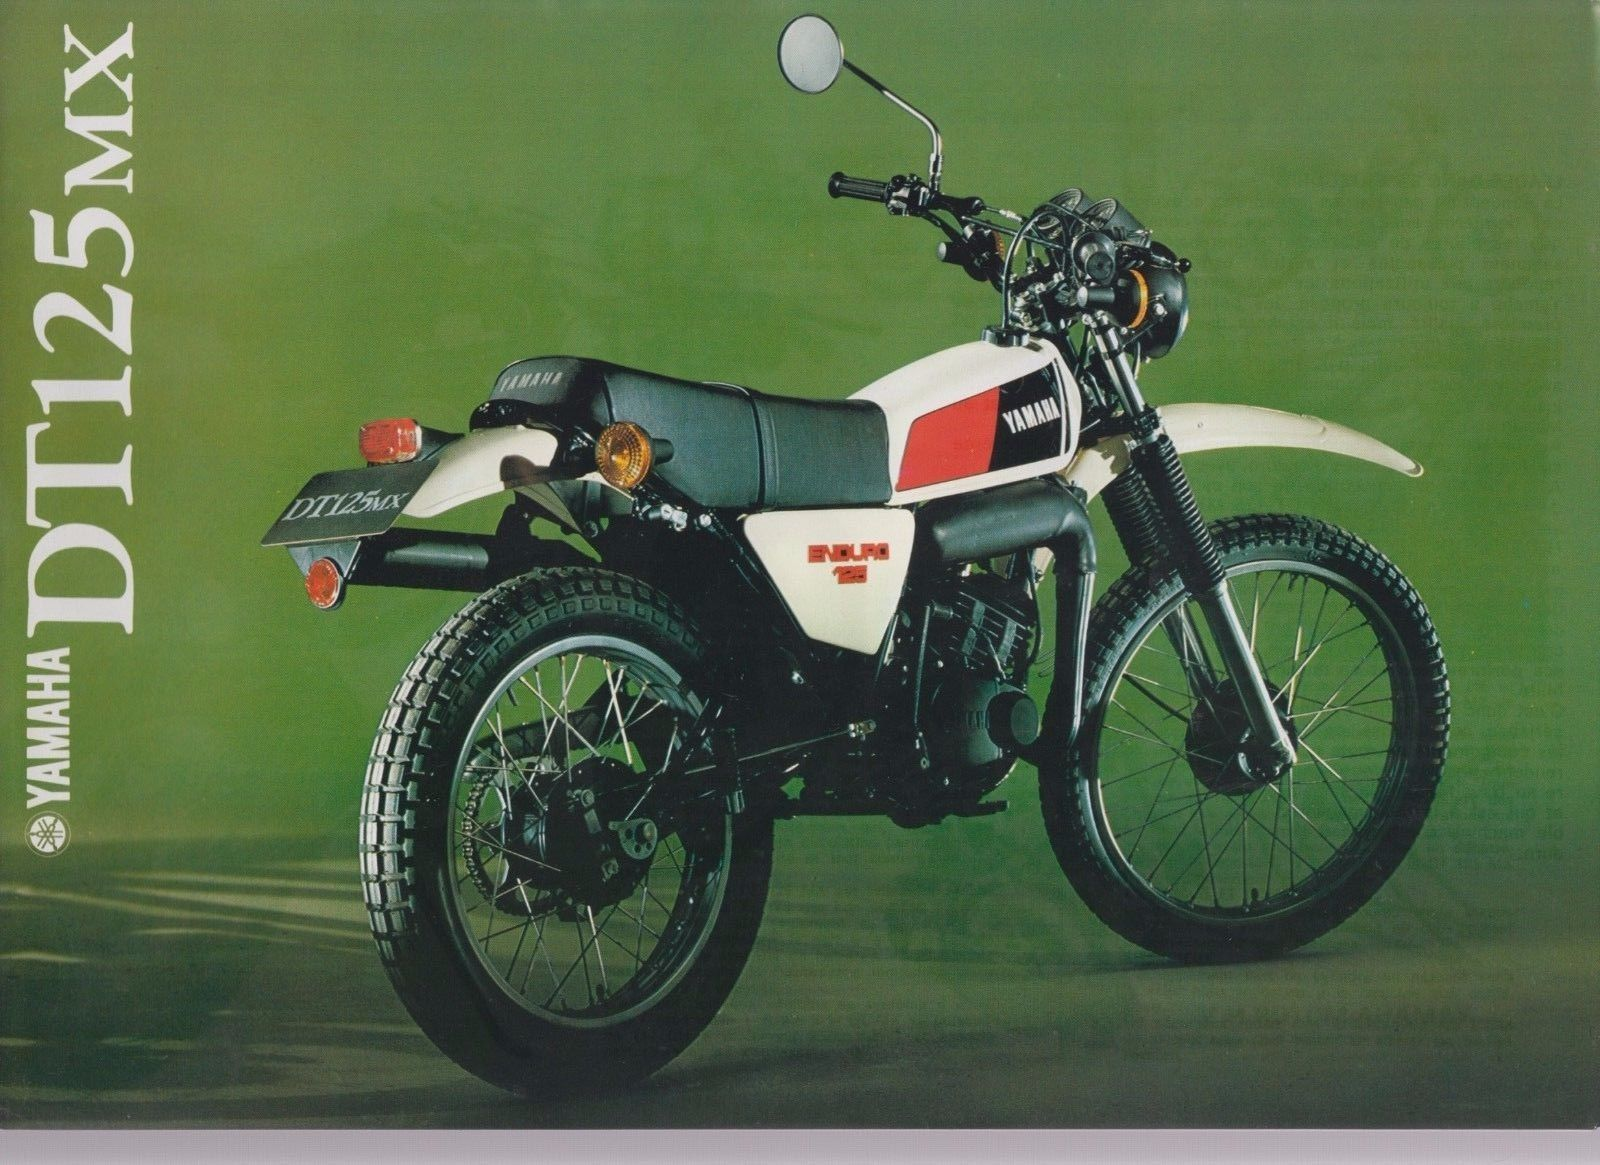 Yamaha Dt 125 Mx Motorcycle Brochure Ebay Motorcycle